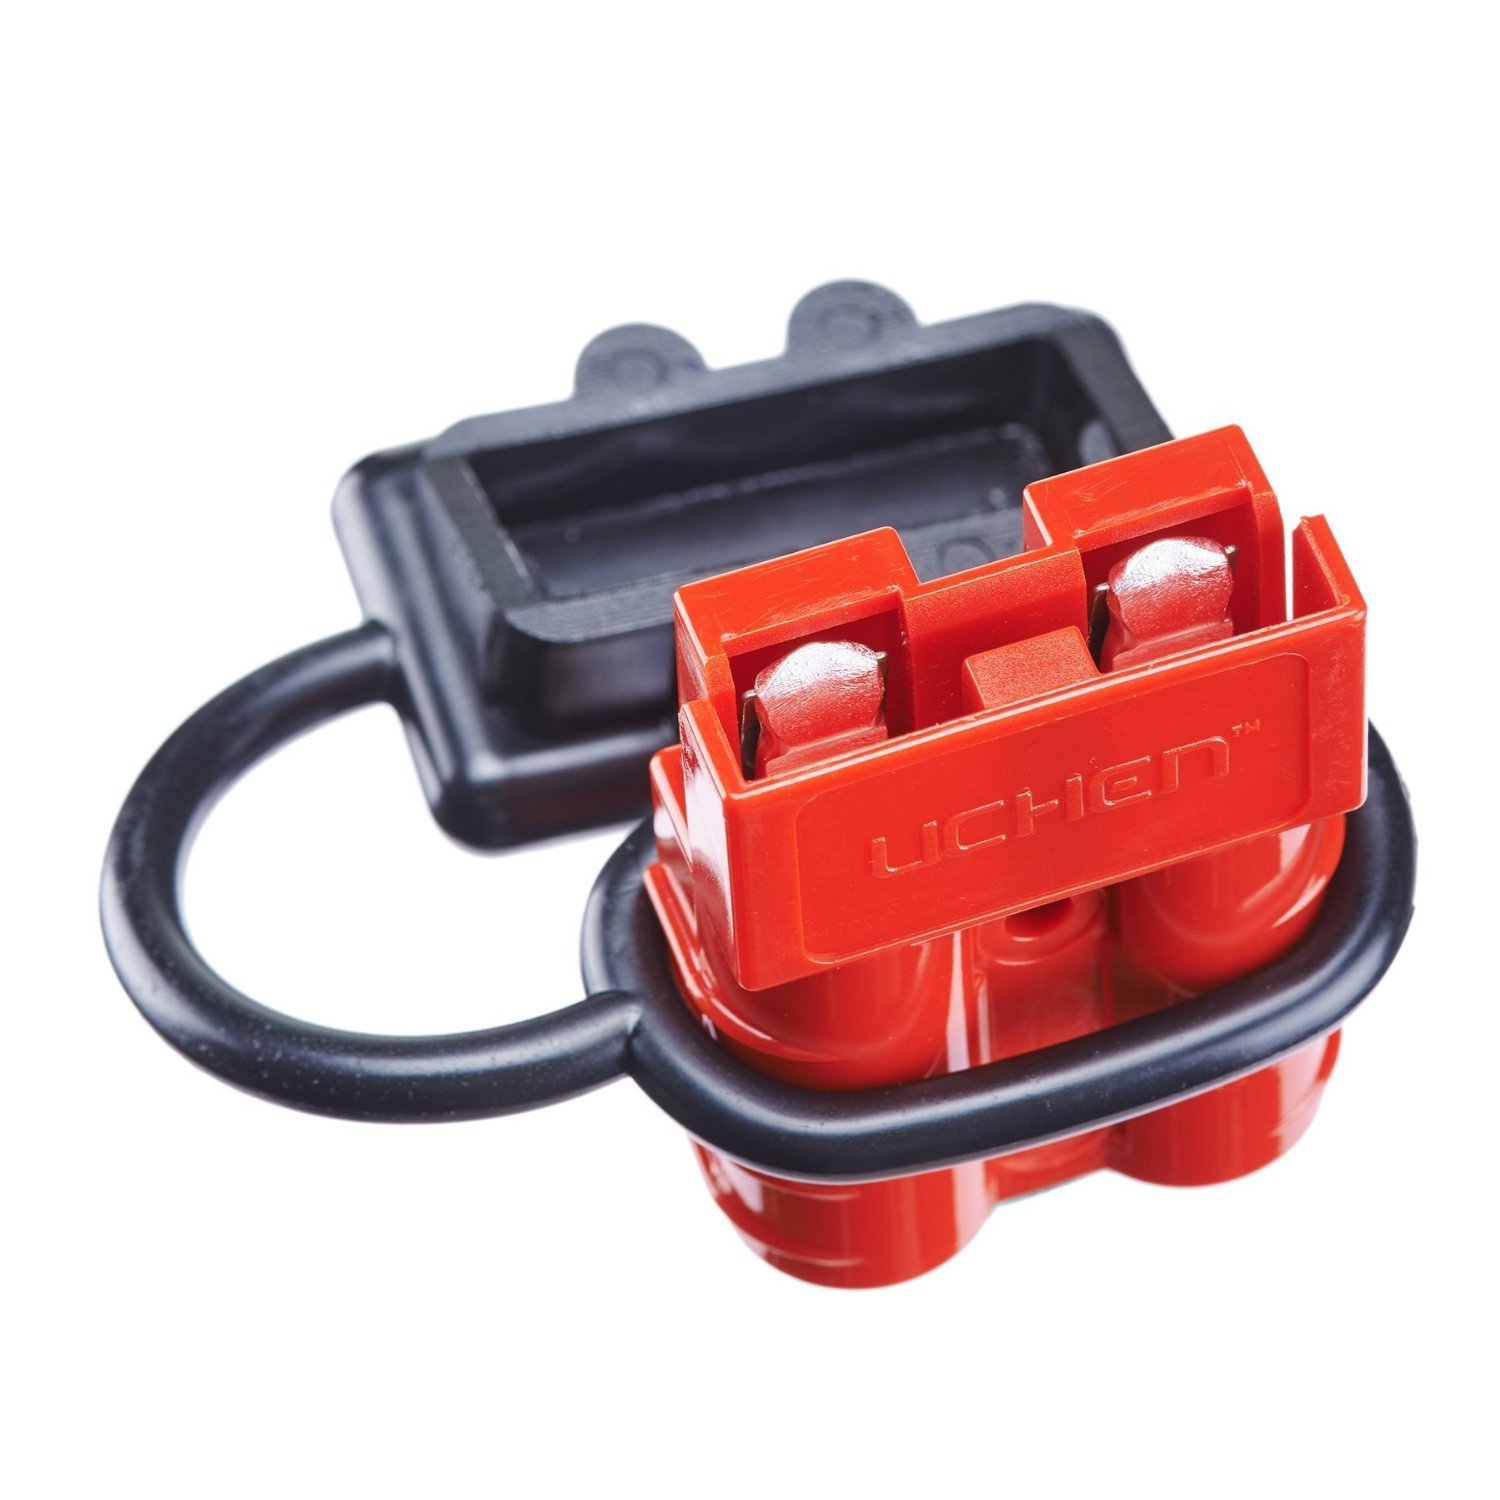 BaiFM 50A Battery Quick Connect//Disconnect Wire Harness Plug Connector Kit Winch Trailer 4350425891